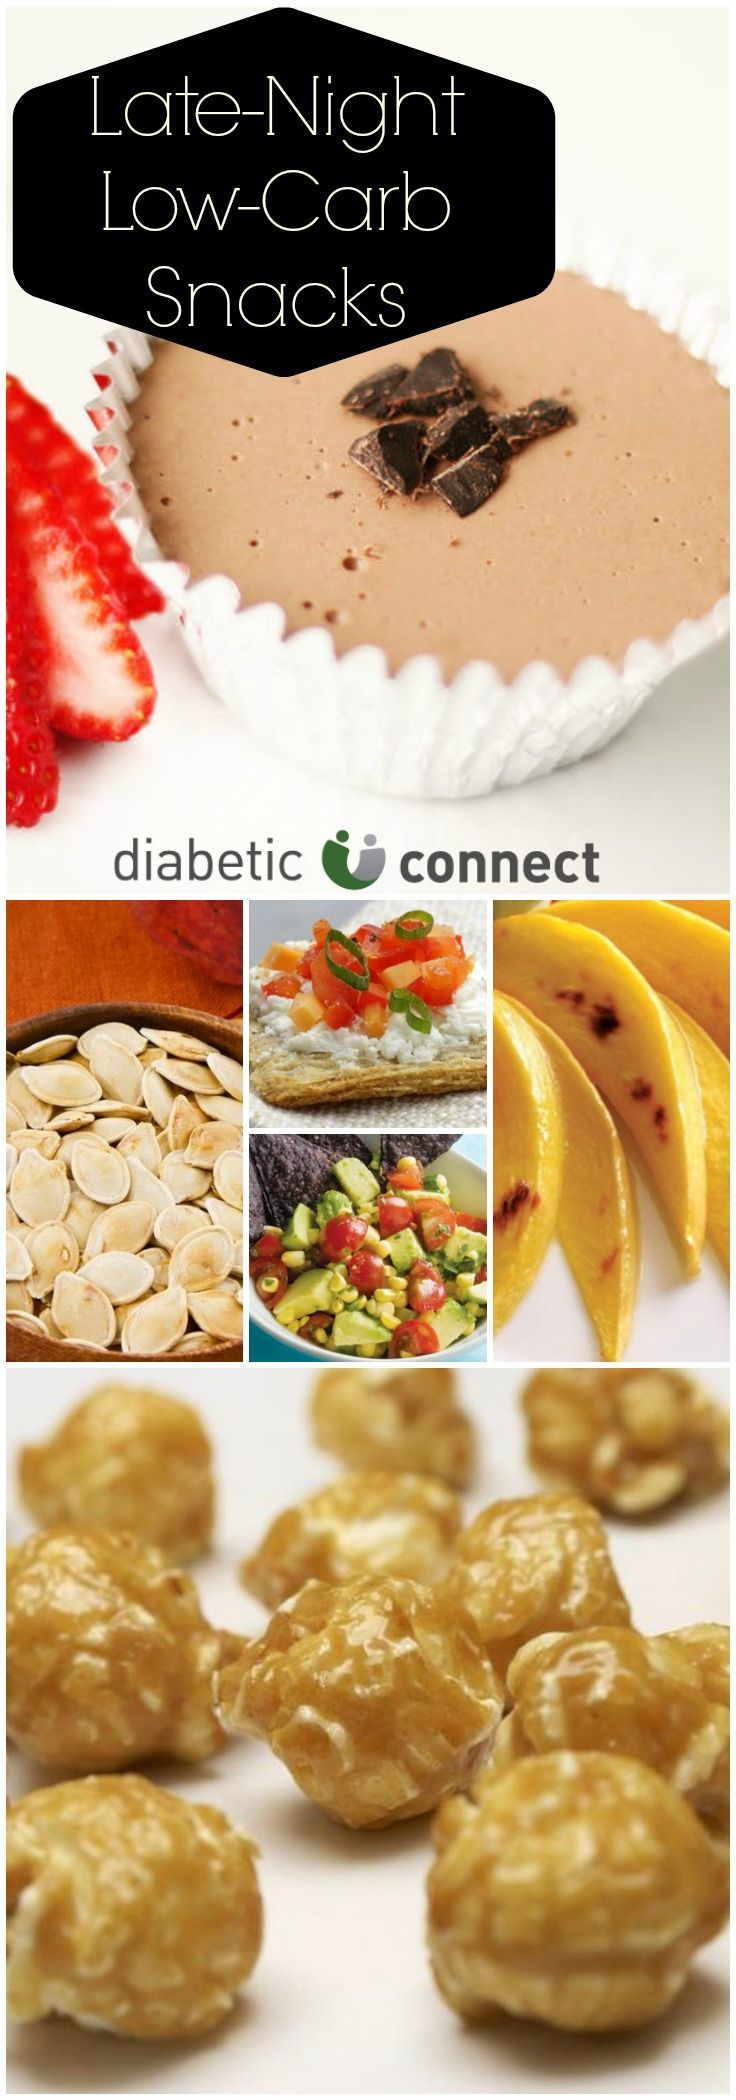 Late Night Diabetic Snacks- When the munchies strike at night, don't blow your blood sugar on high-carb snacks. Try these diabetic-friendly snacking options.